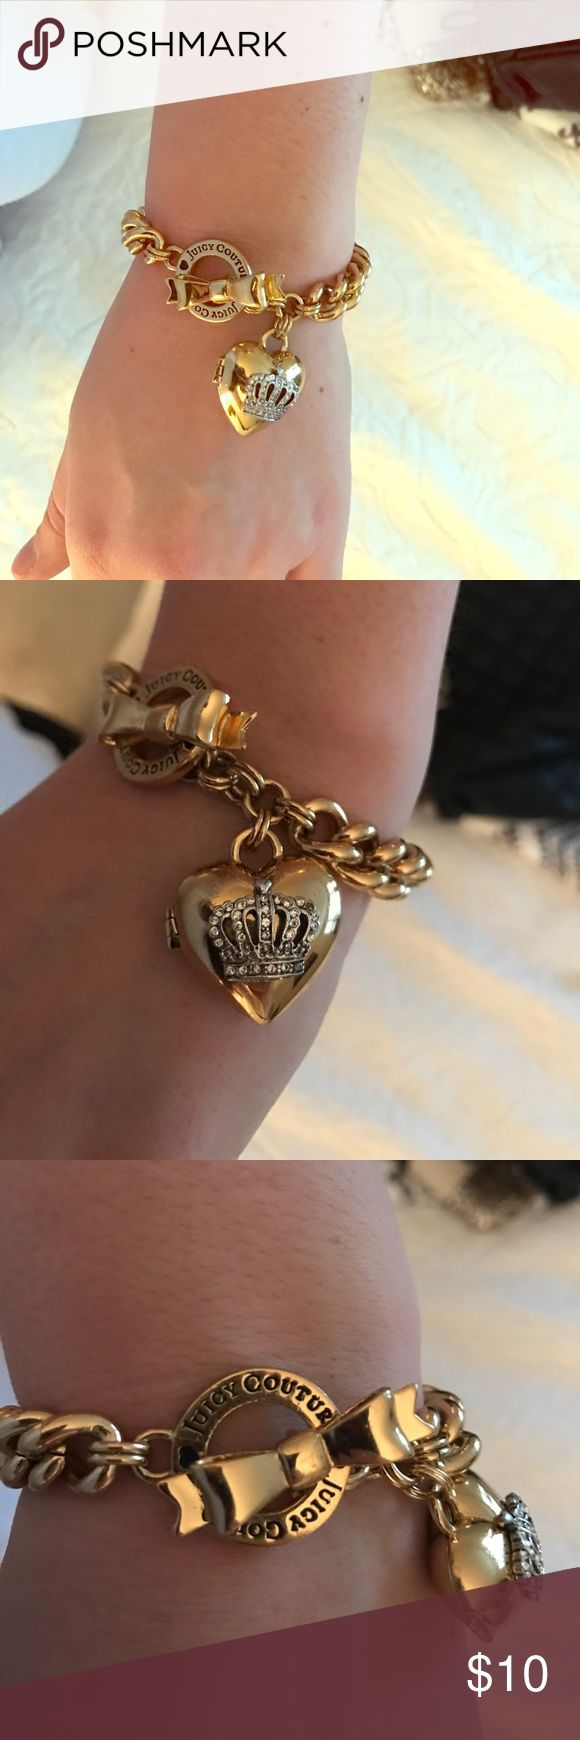 Juicy couture chain bracelet Perfect condition, gold chain bracelet with heart locket attached Juicy Couture Jewelry Bracelets